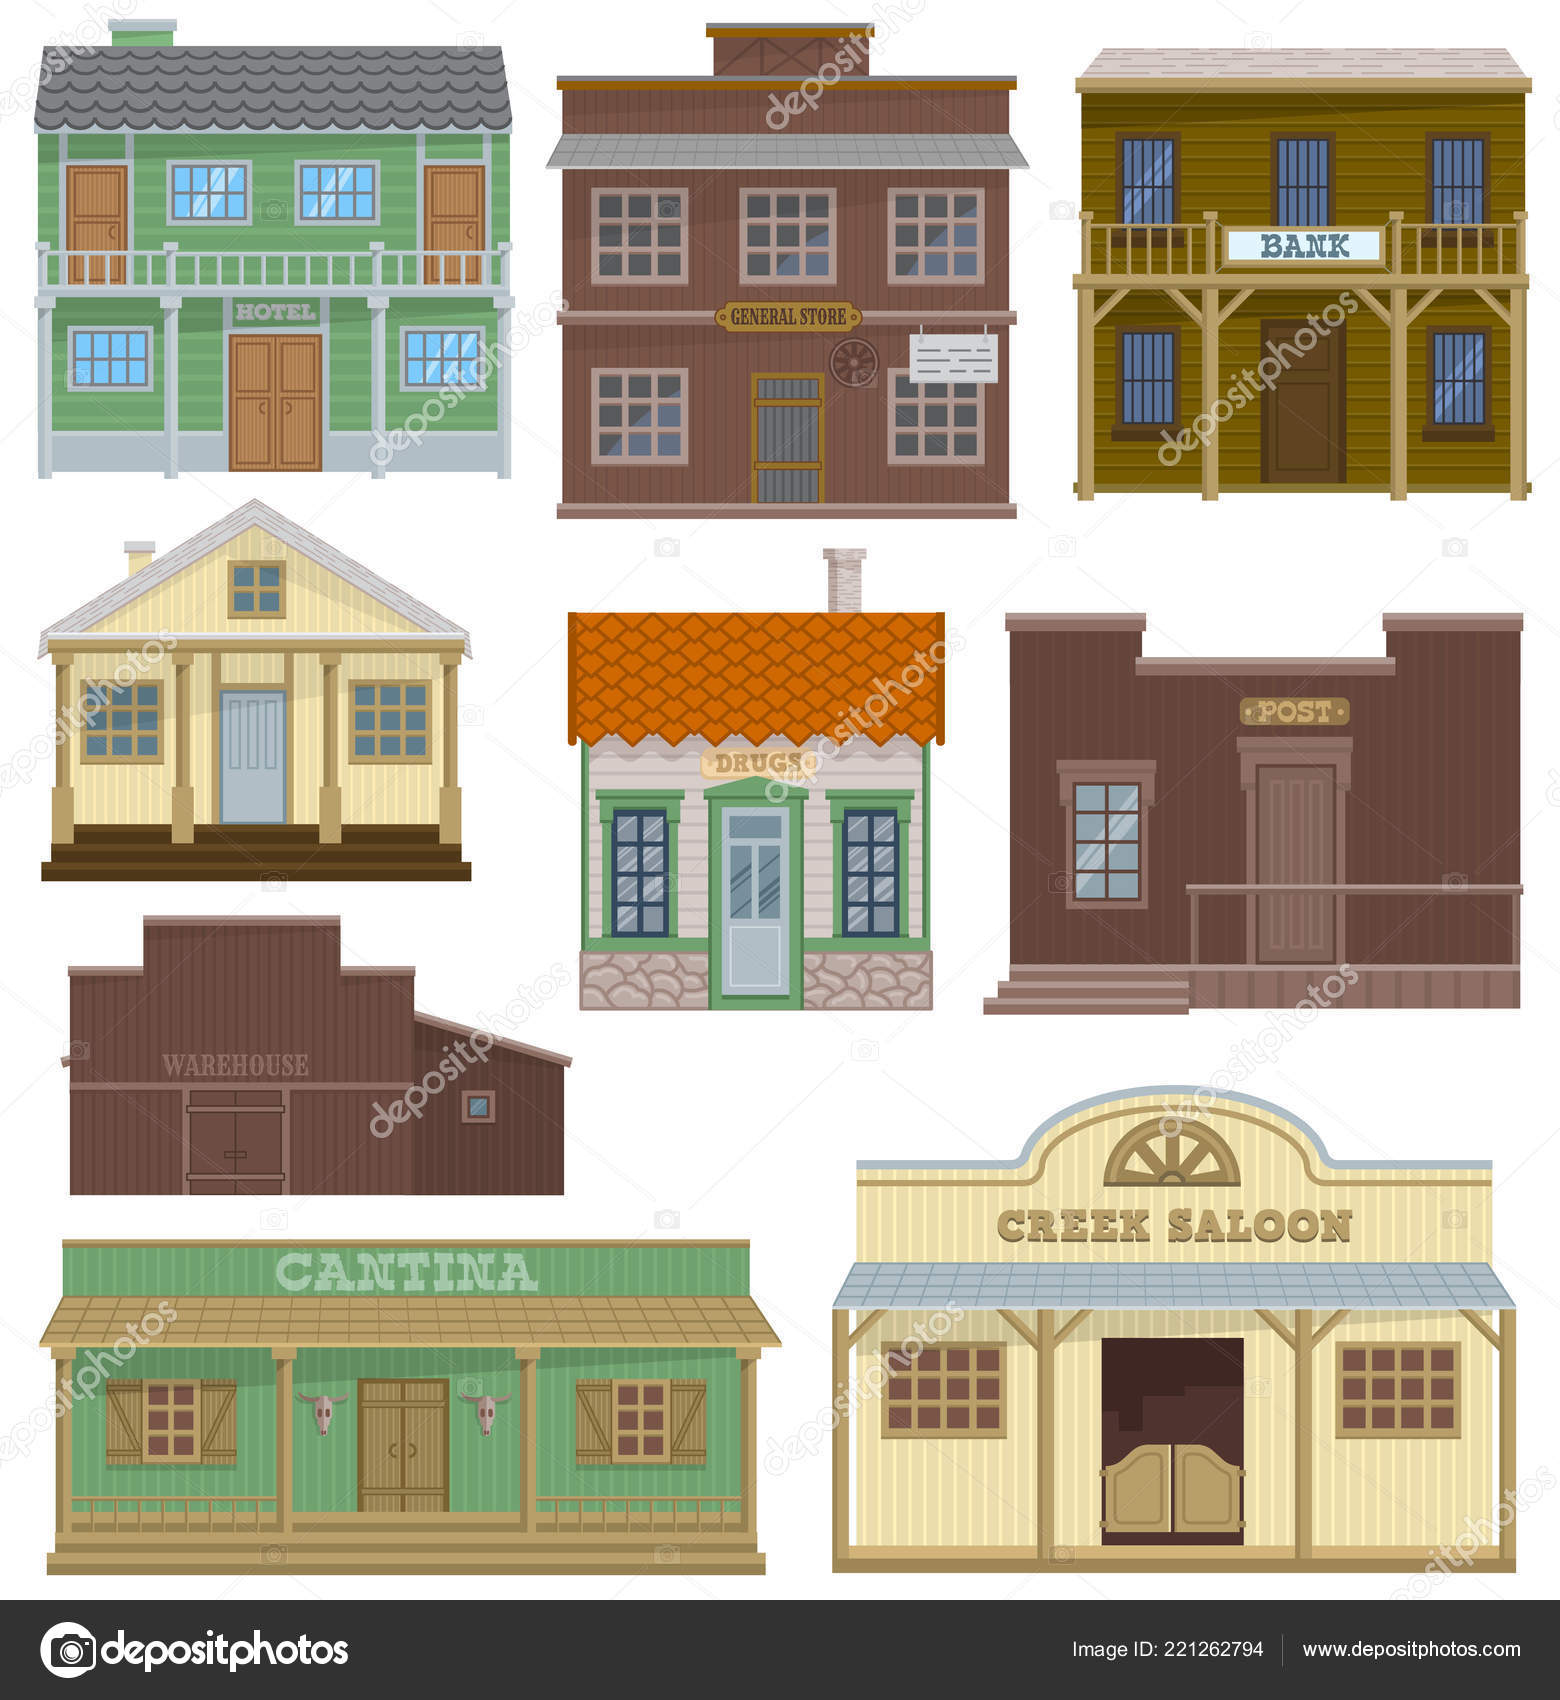 saloon vector wild west housing building and western cowboys house